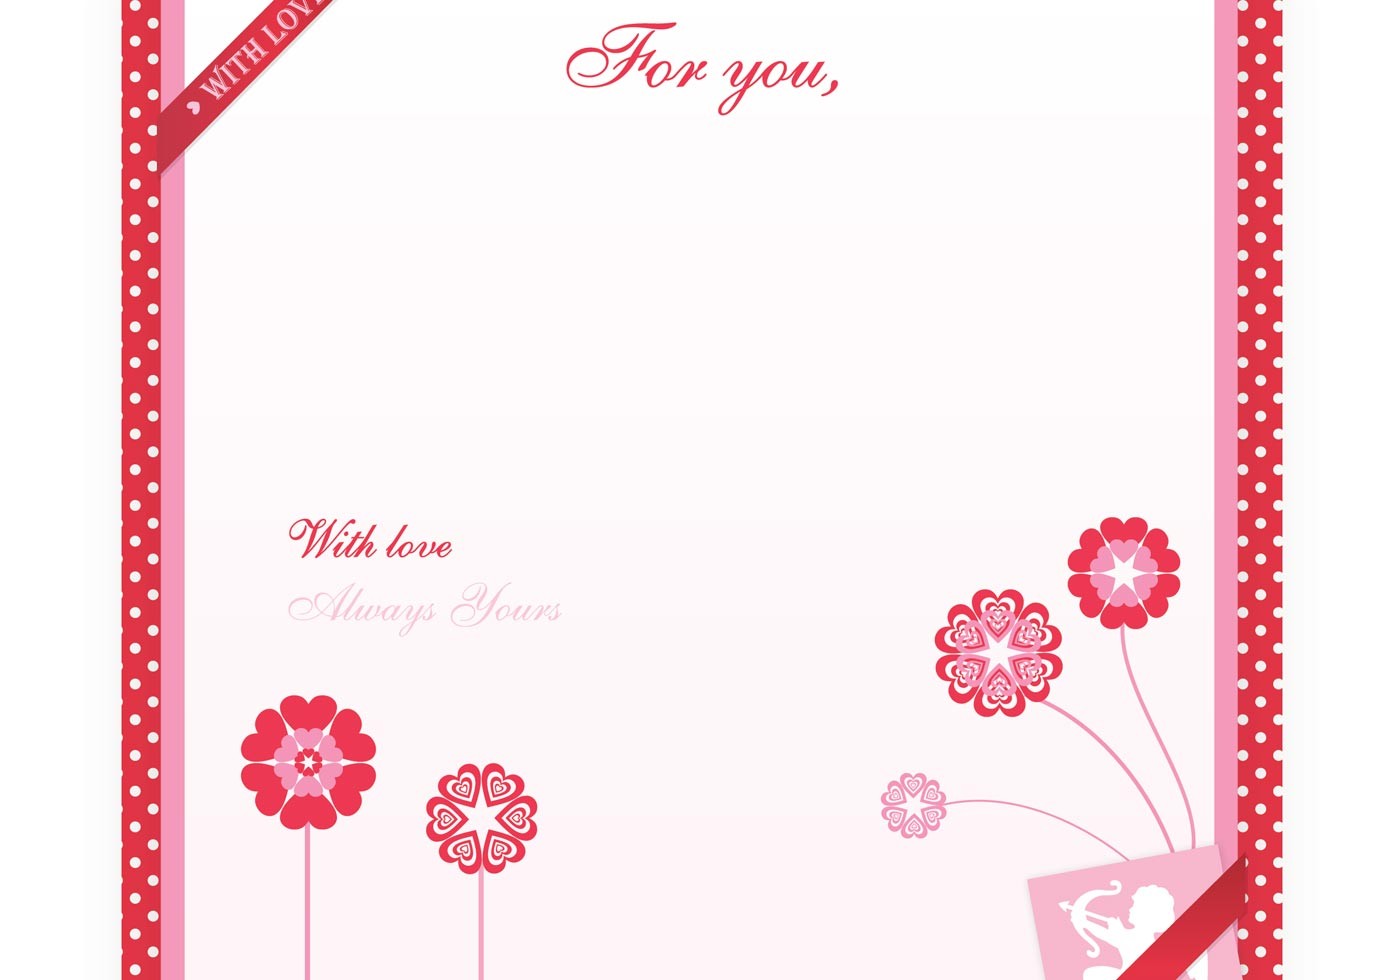 Download Wallpaper Love Letter - valentine-s-day-love-letter-vector-wallpaper  Image_569312.jpg